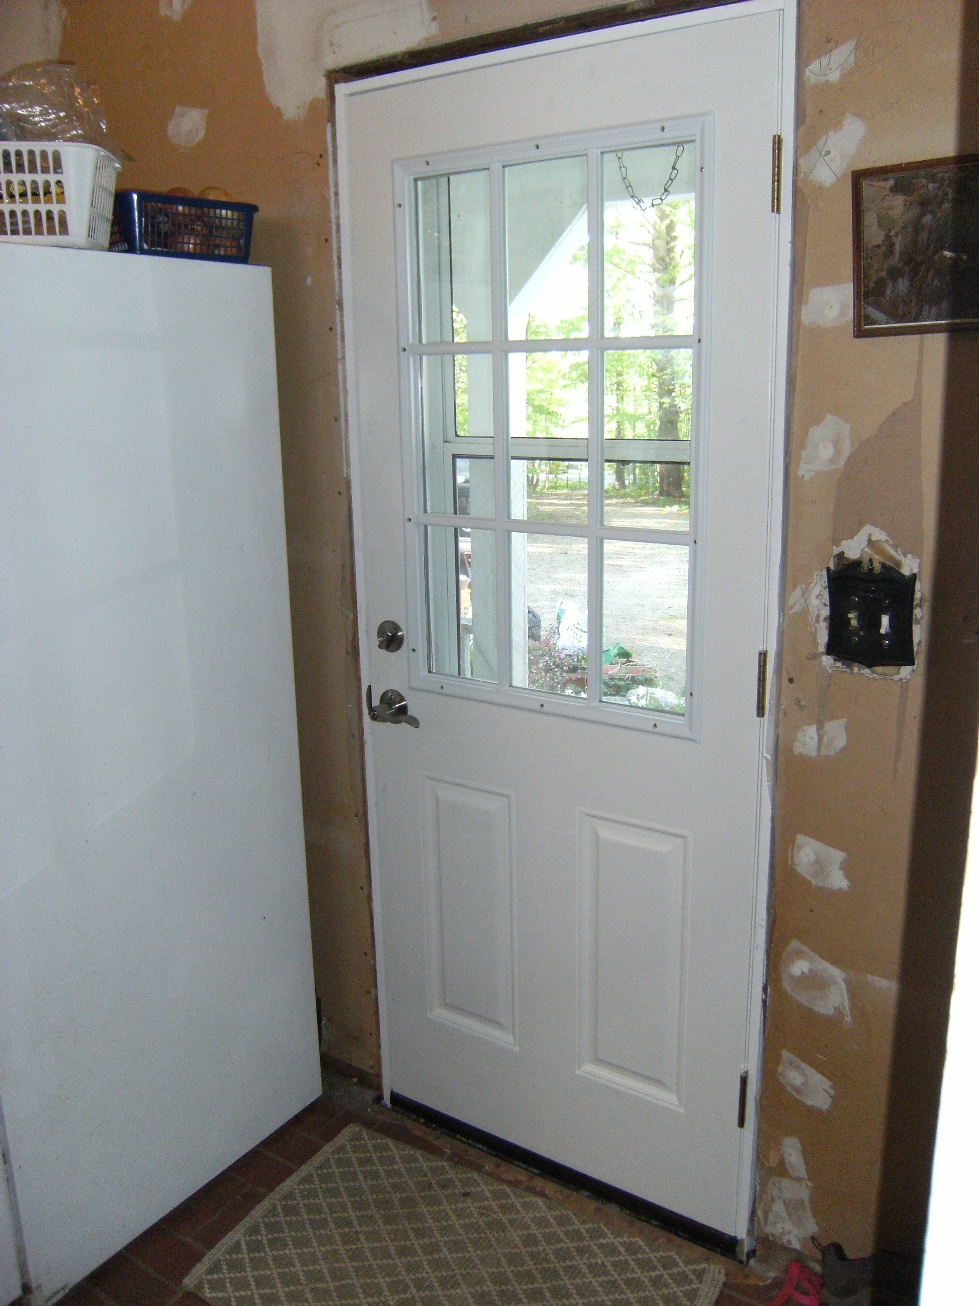 Nicoll carpentry llc september 2010 for Back door with window that opens